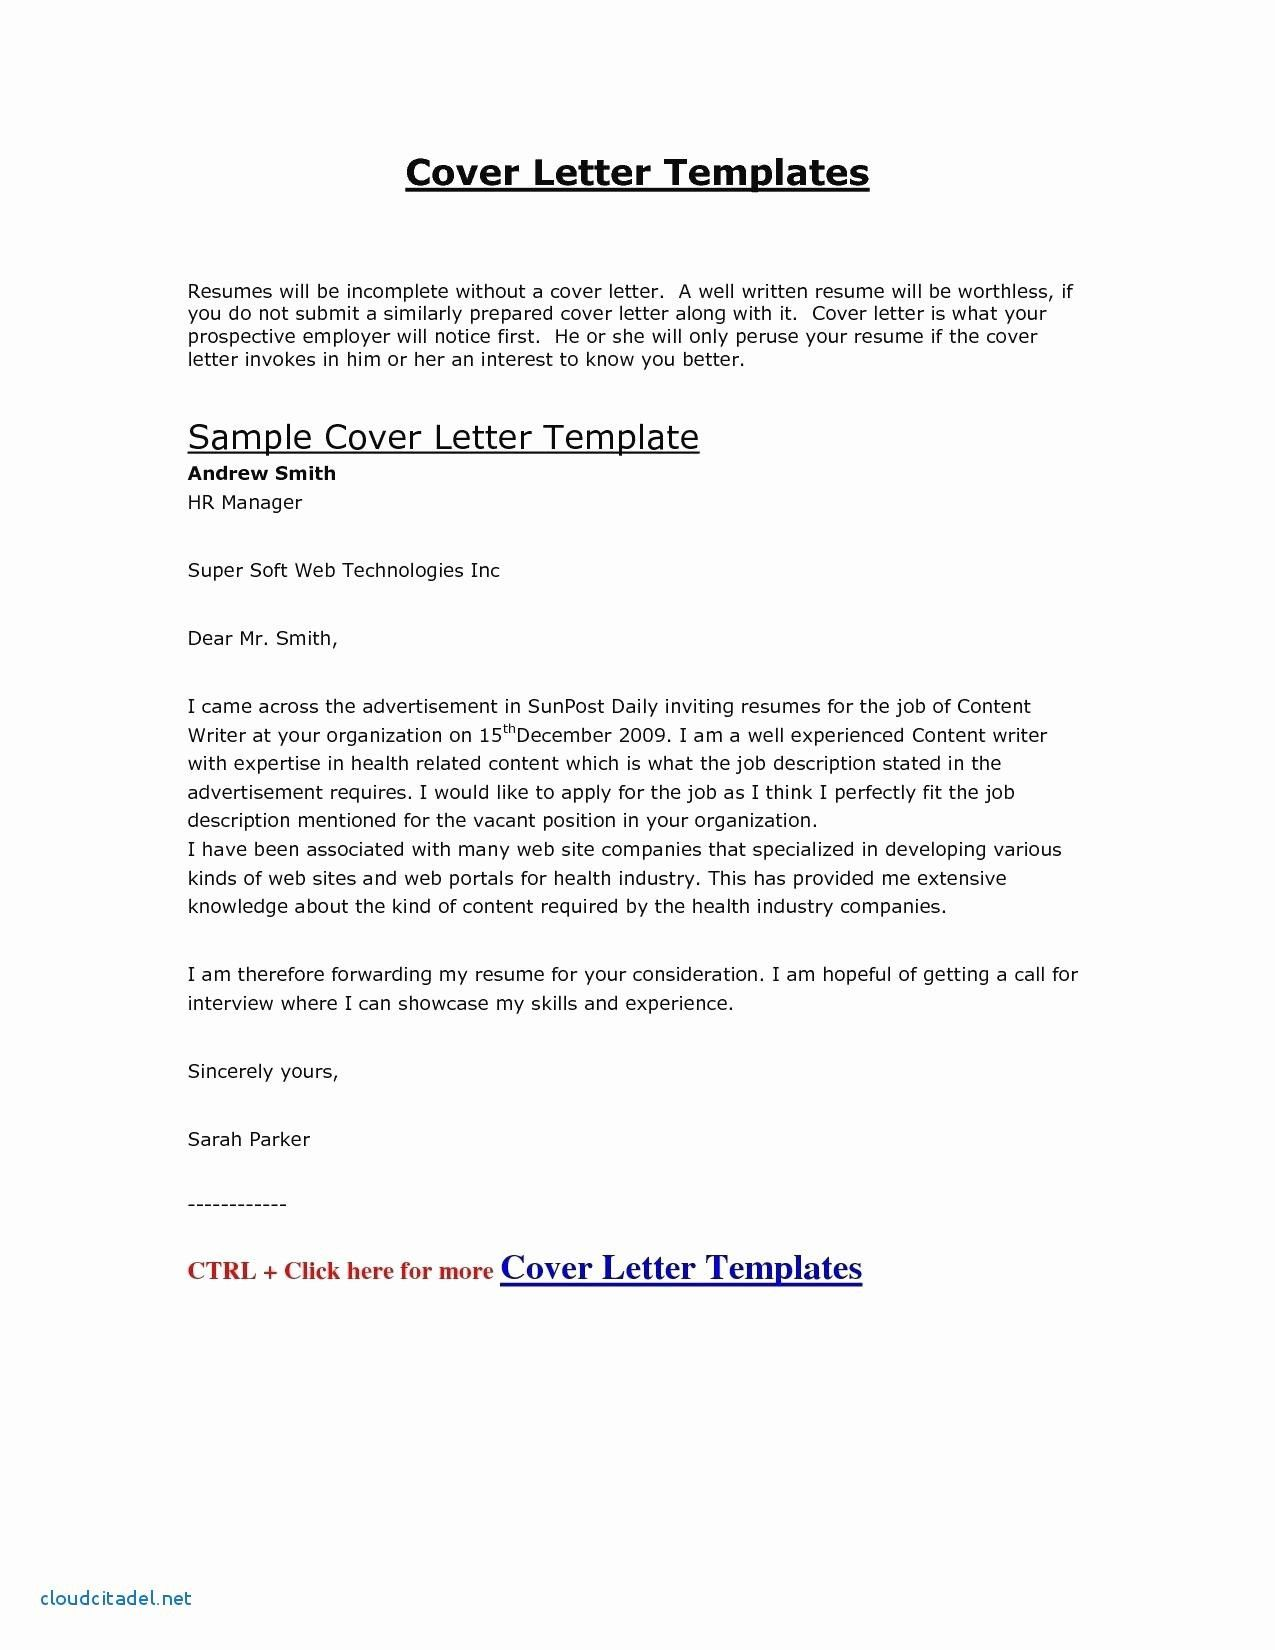 27+ Cover Letter Intro | Resume Cover Letter Example | Cover letter ...